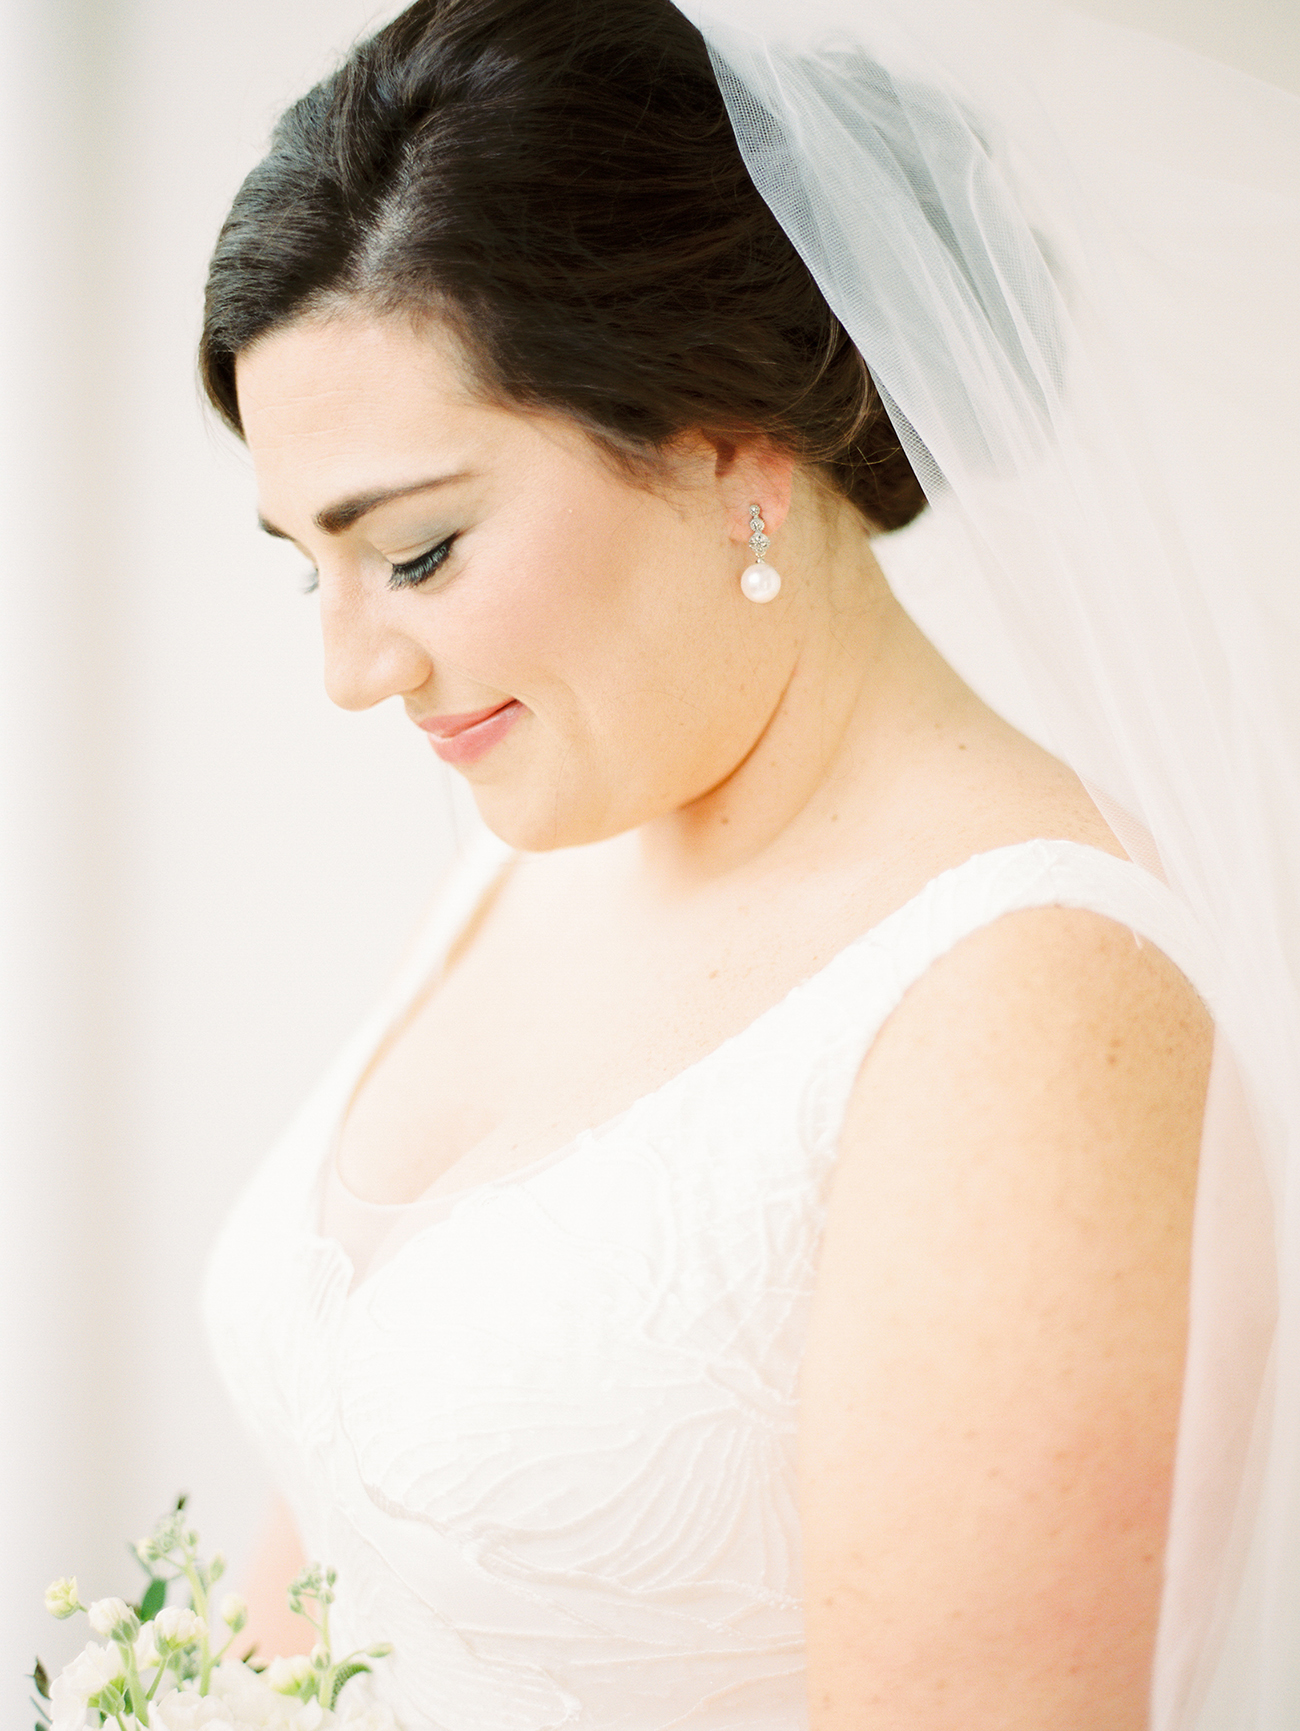 nrp-nancy-ashleydavisbridals-2039